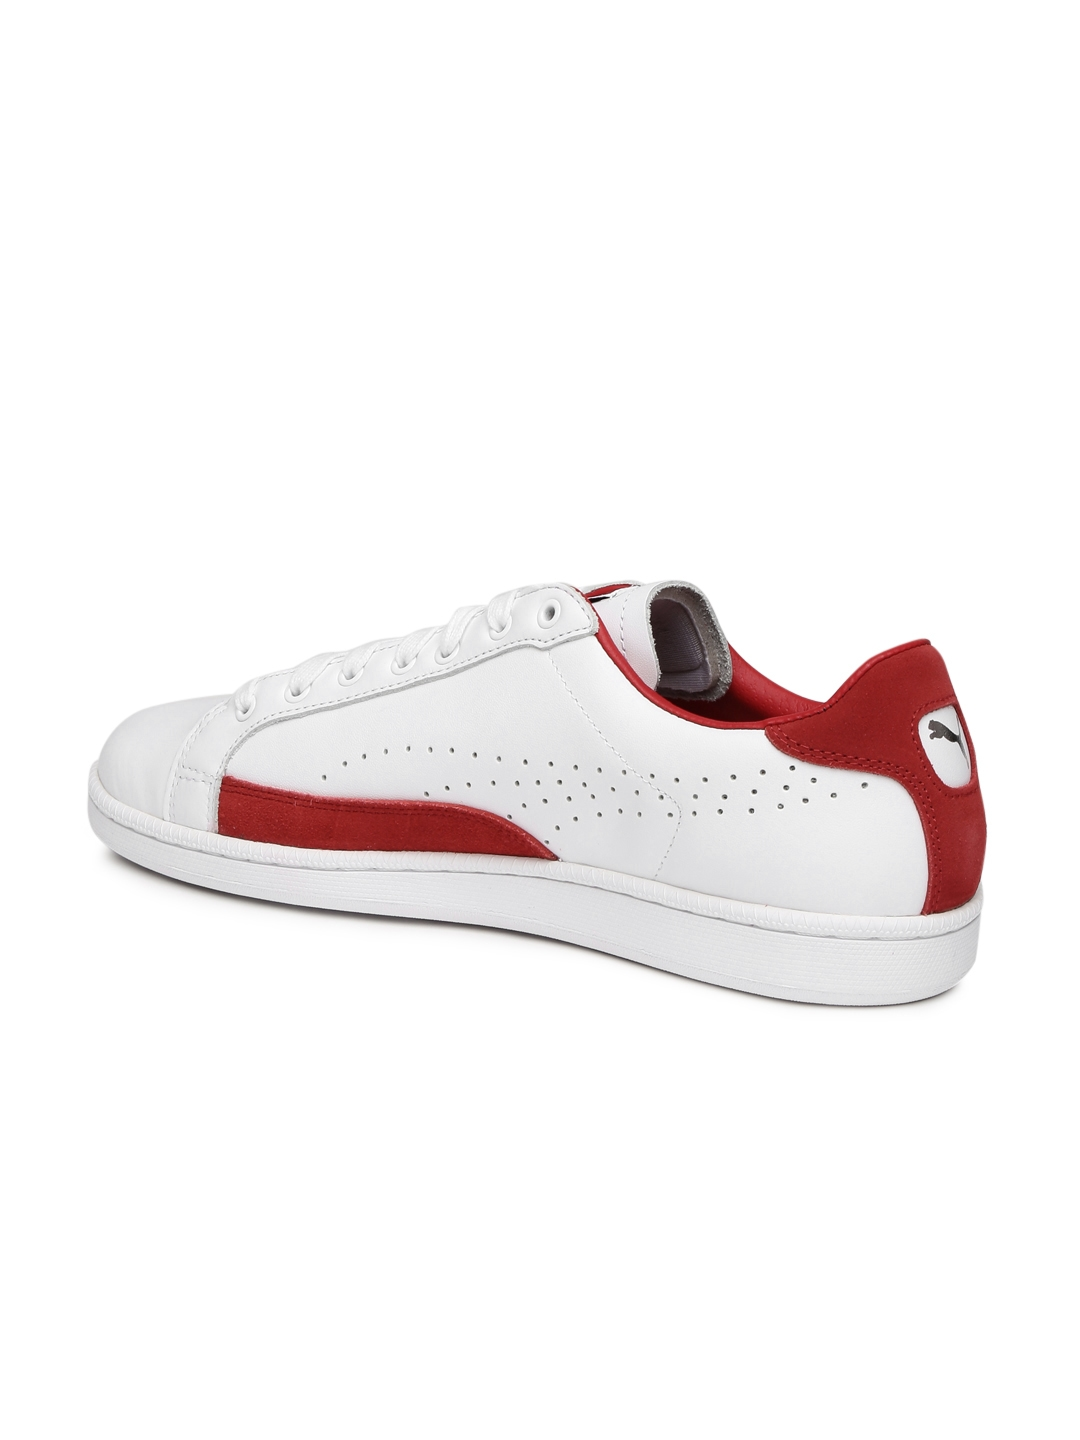 9b162399eee Buy Puma Men White   Red Colourblocked Match 74 UPC Leather Sneakers ...